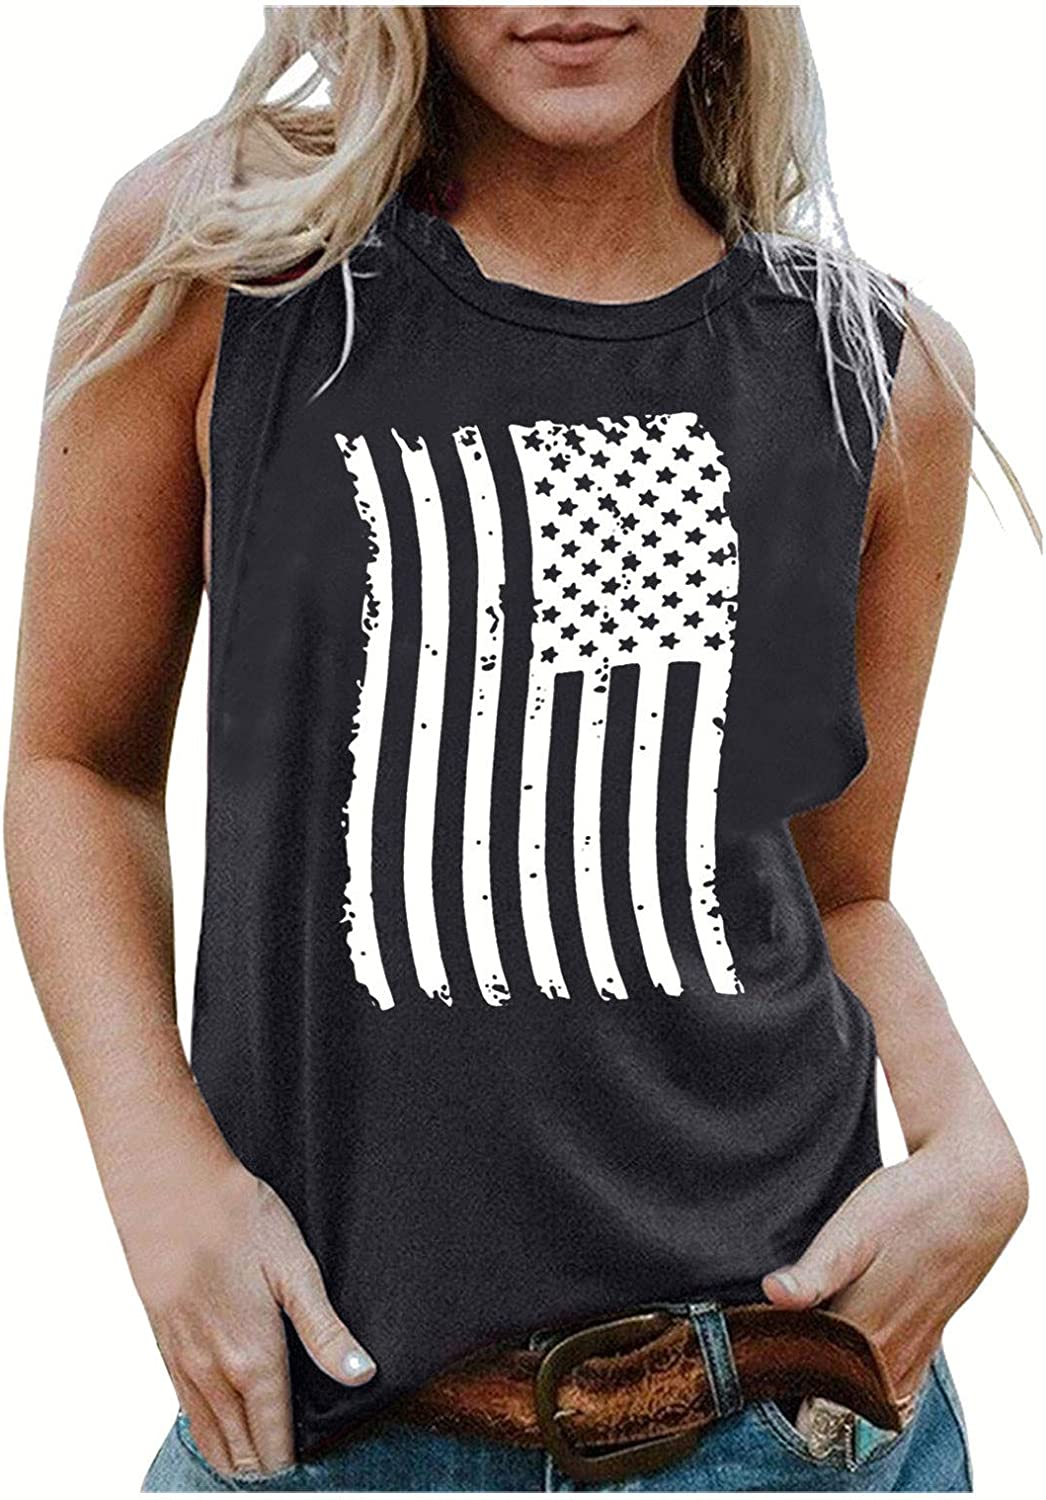 Womens Tops Graphic Tees Women Funny,Women American Flag Tank Tops 4th of July Tee Summer Loose Patriotic USA T Shirts